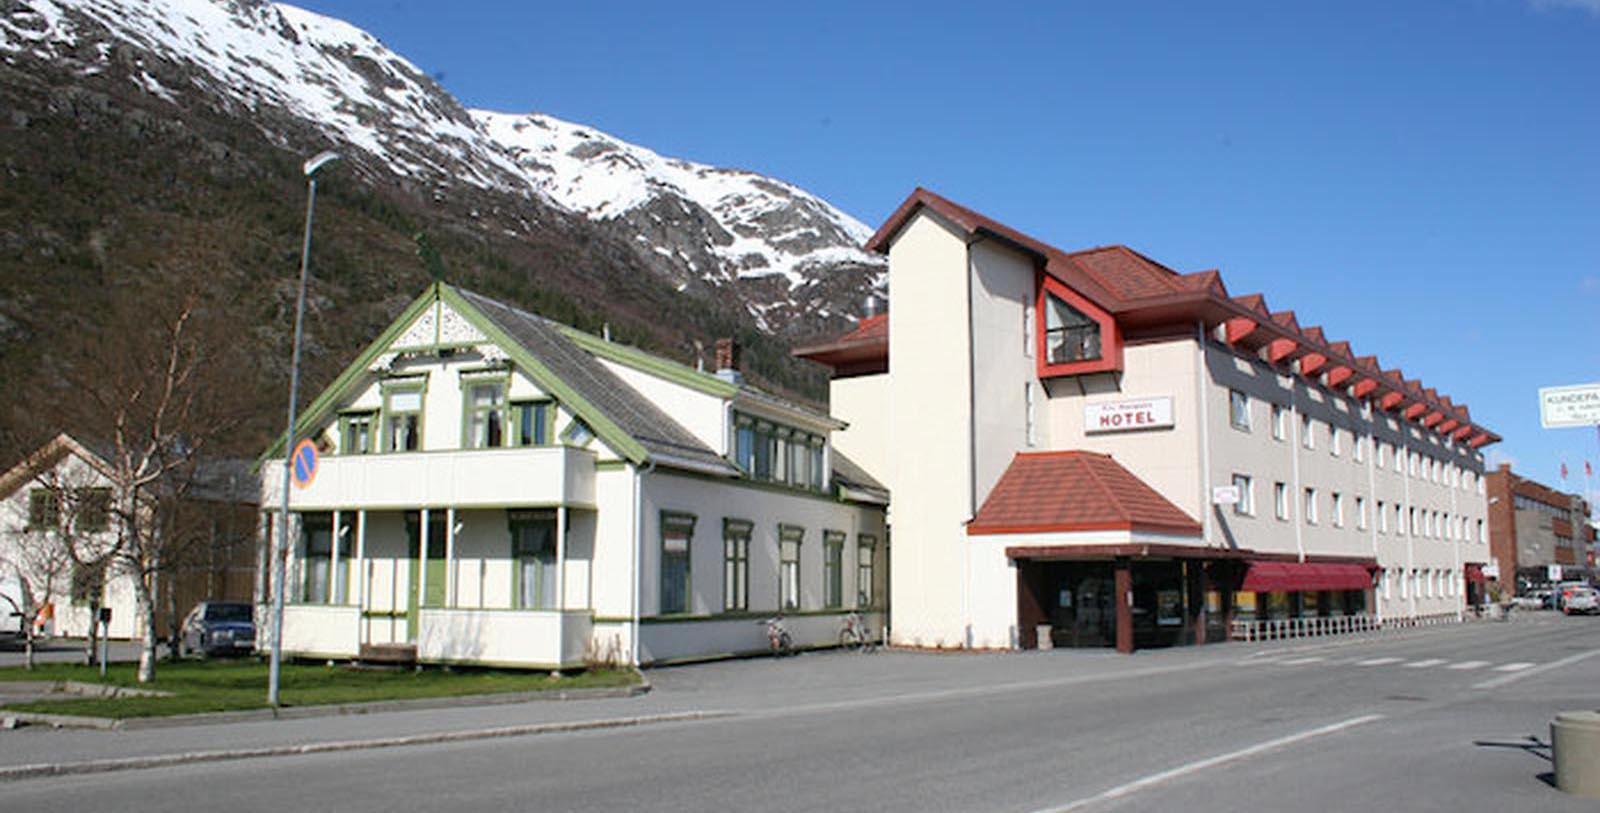 Image of Hotel Exterior, Fru Haugans Hotel, Mosjoen, Norway, 1794, Member of Historic Hotels Worldwide, Special Offers, Discounted Rates, Families, Romantic Escape, Honeymoons, Anniversaries, Reunions